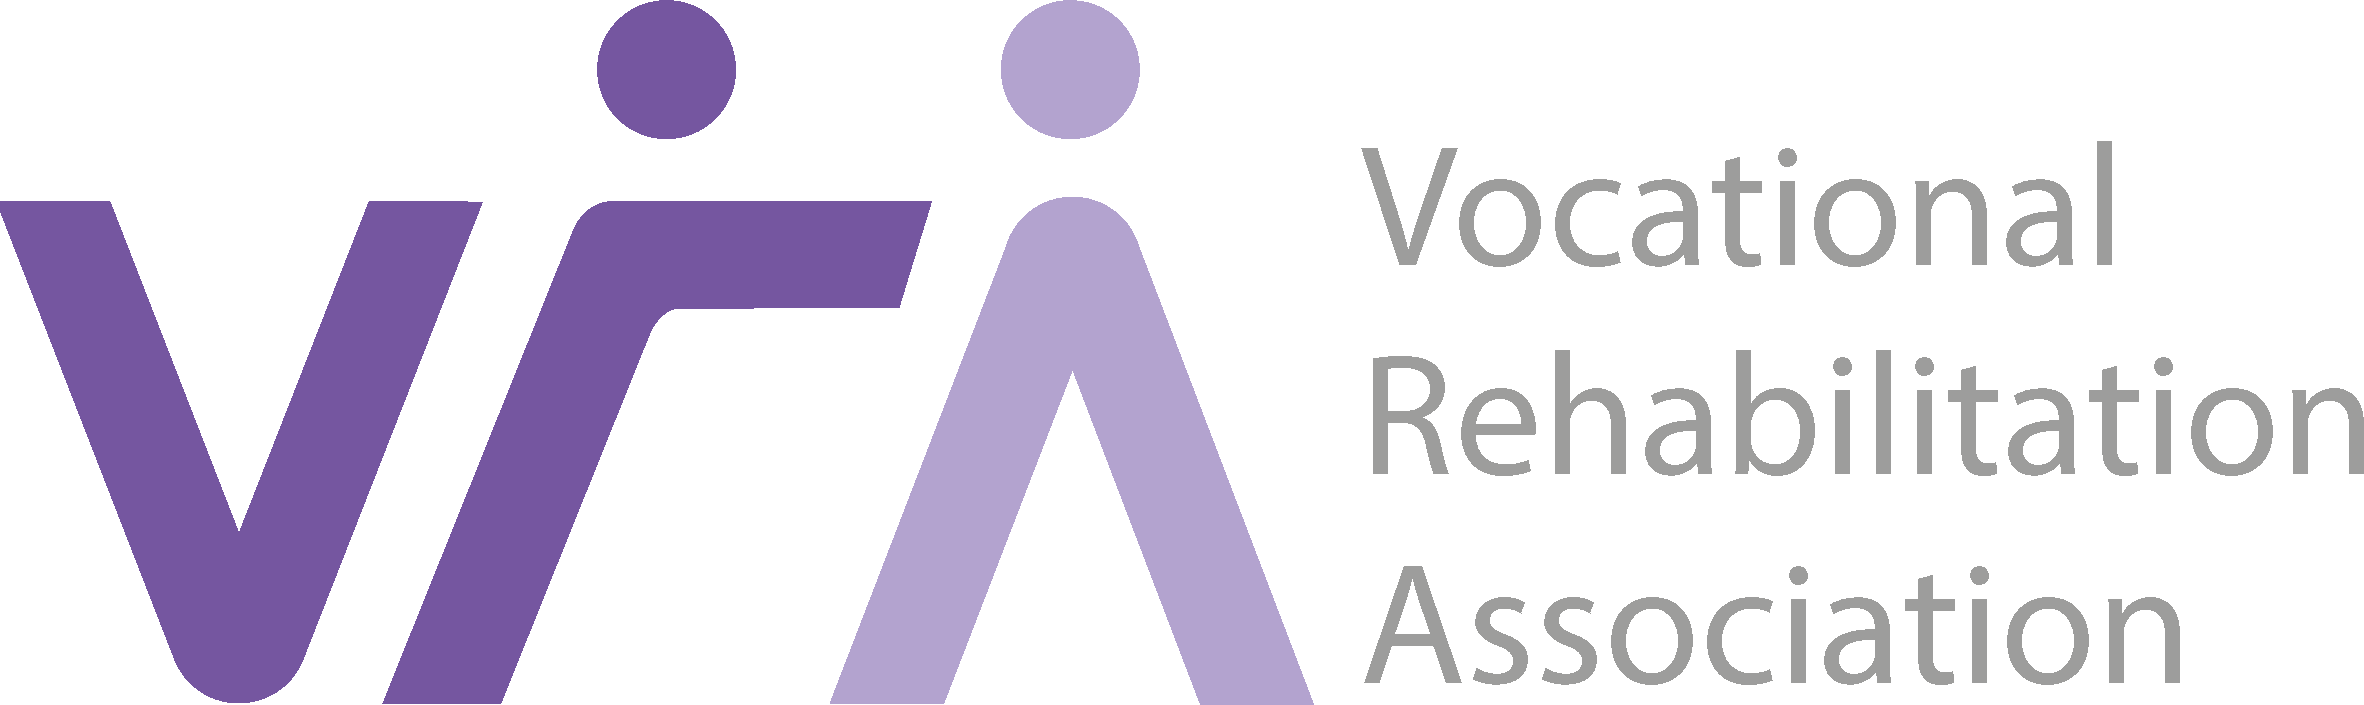 Vocational Rehabilitation Association UK